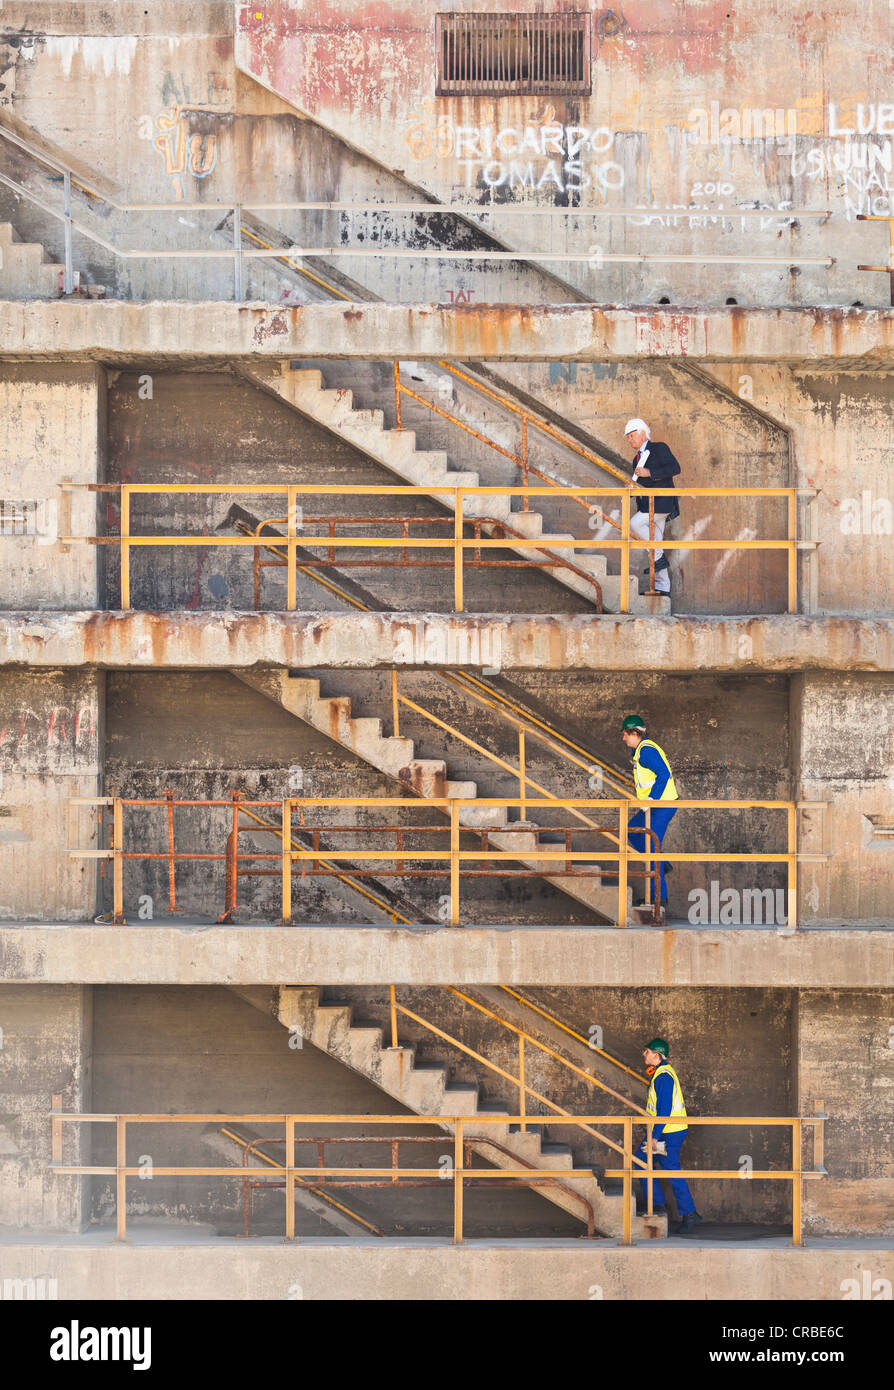 Workers climbing steps on dry dock Stock Photo